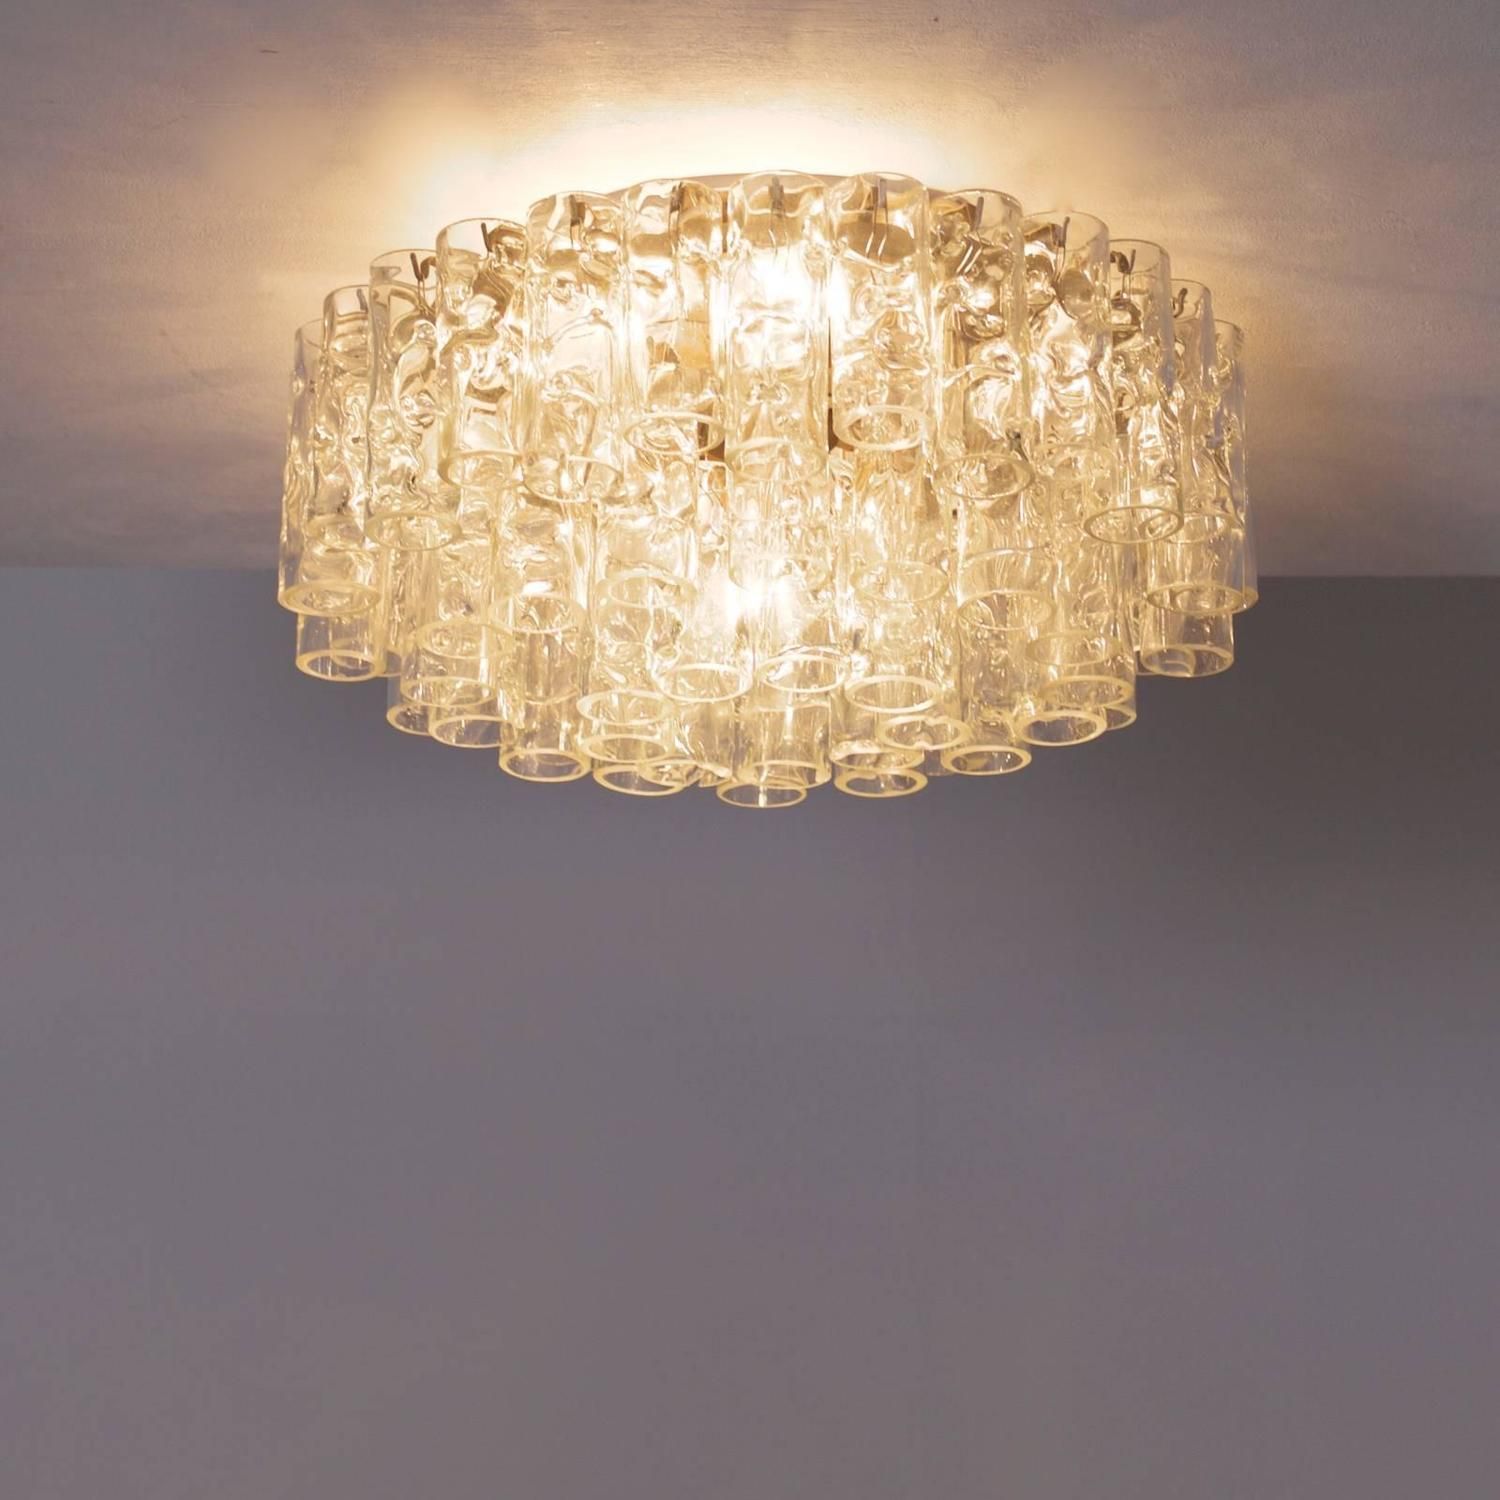 Huge Doria Flush Mount Chandelier with Glass Tubes